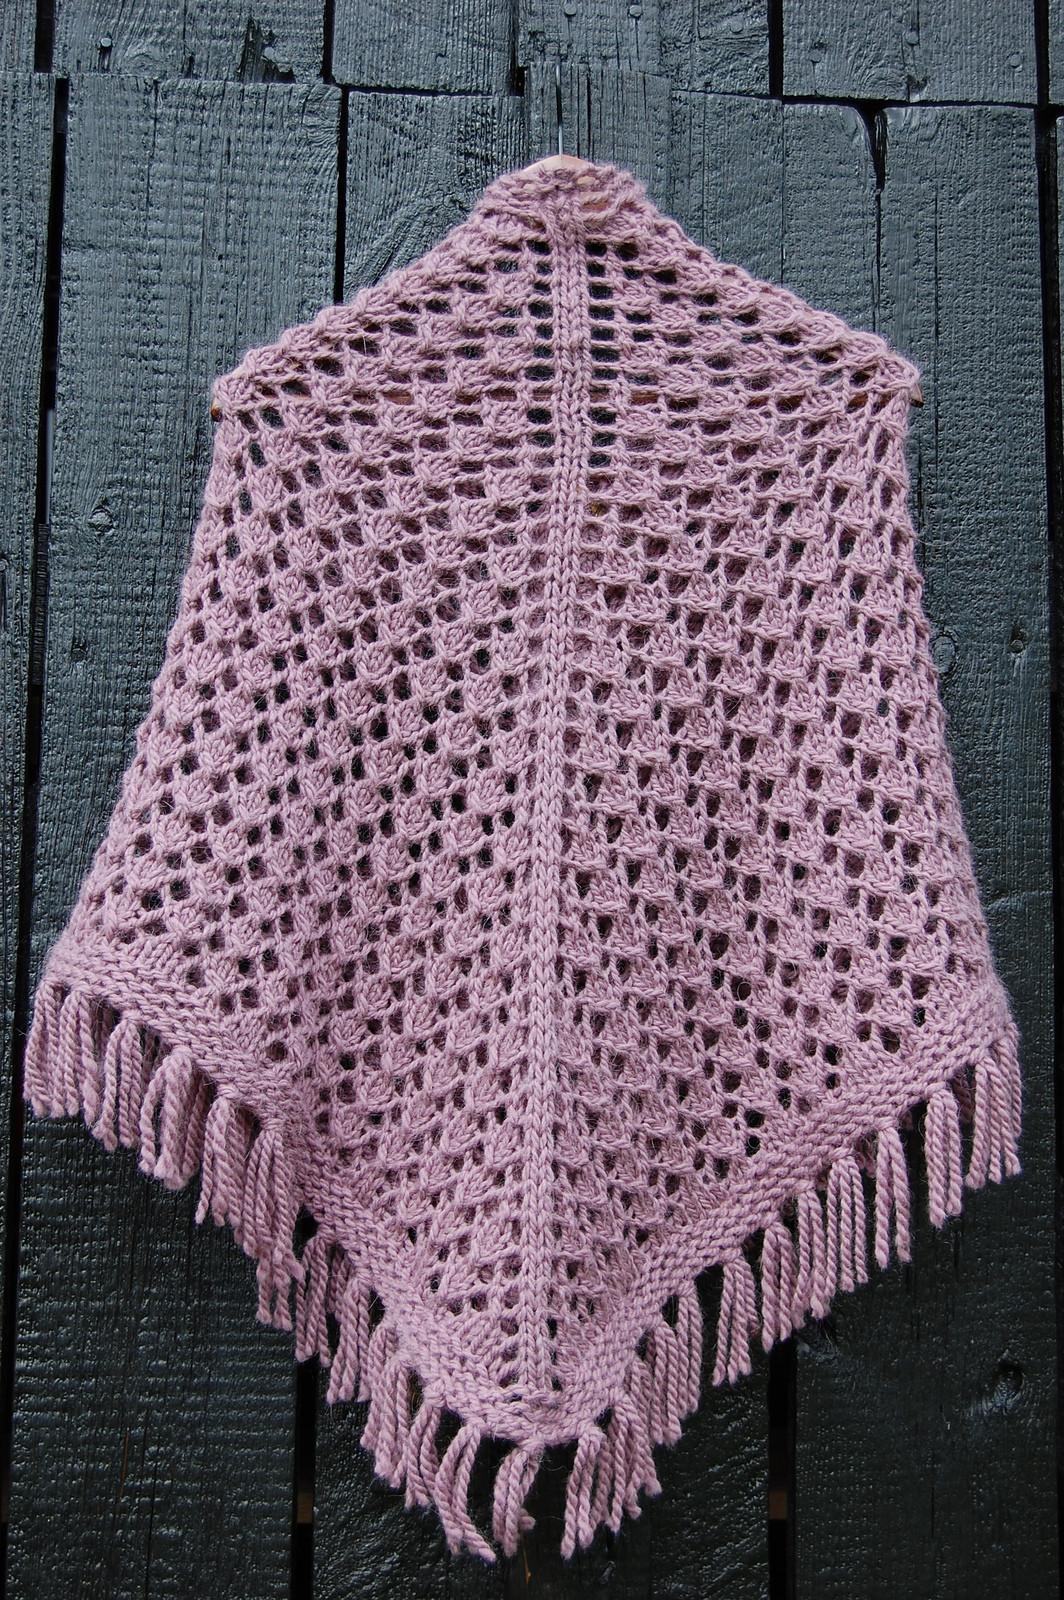 Shawl Knitting Patterns Unique Shawls for Bulky Yarn Knitting Patterns Of New 43 Images Shawl Knitting Patterns